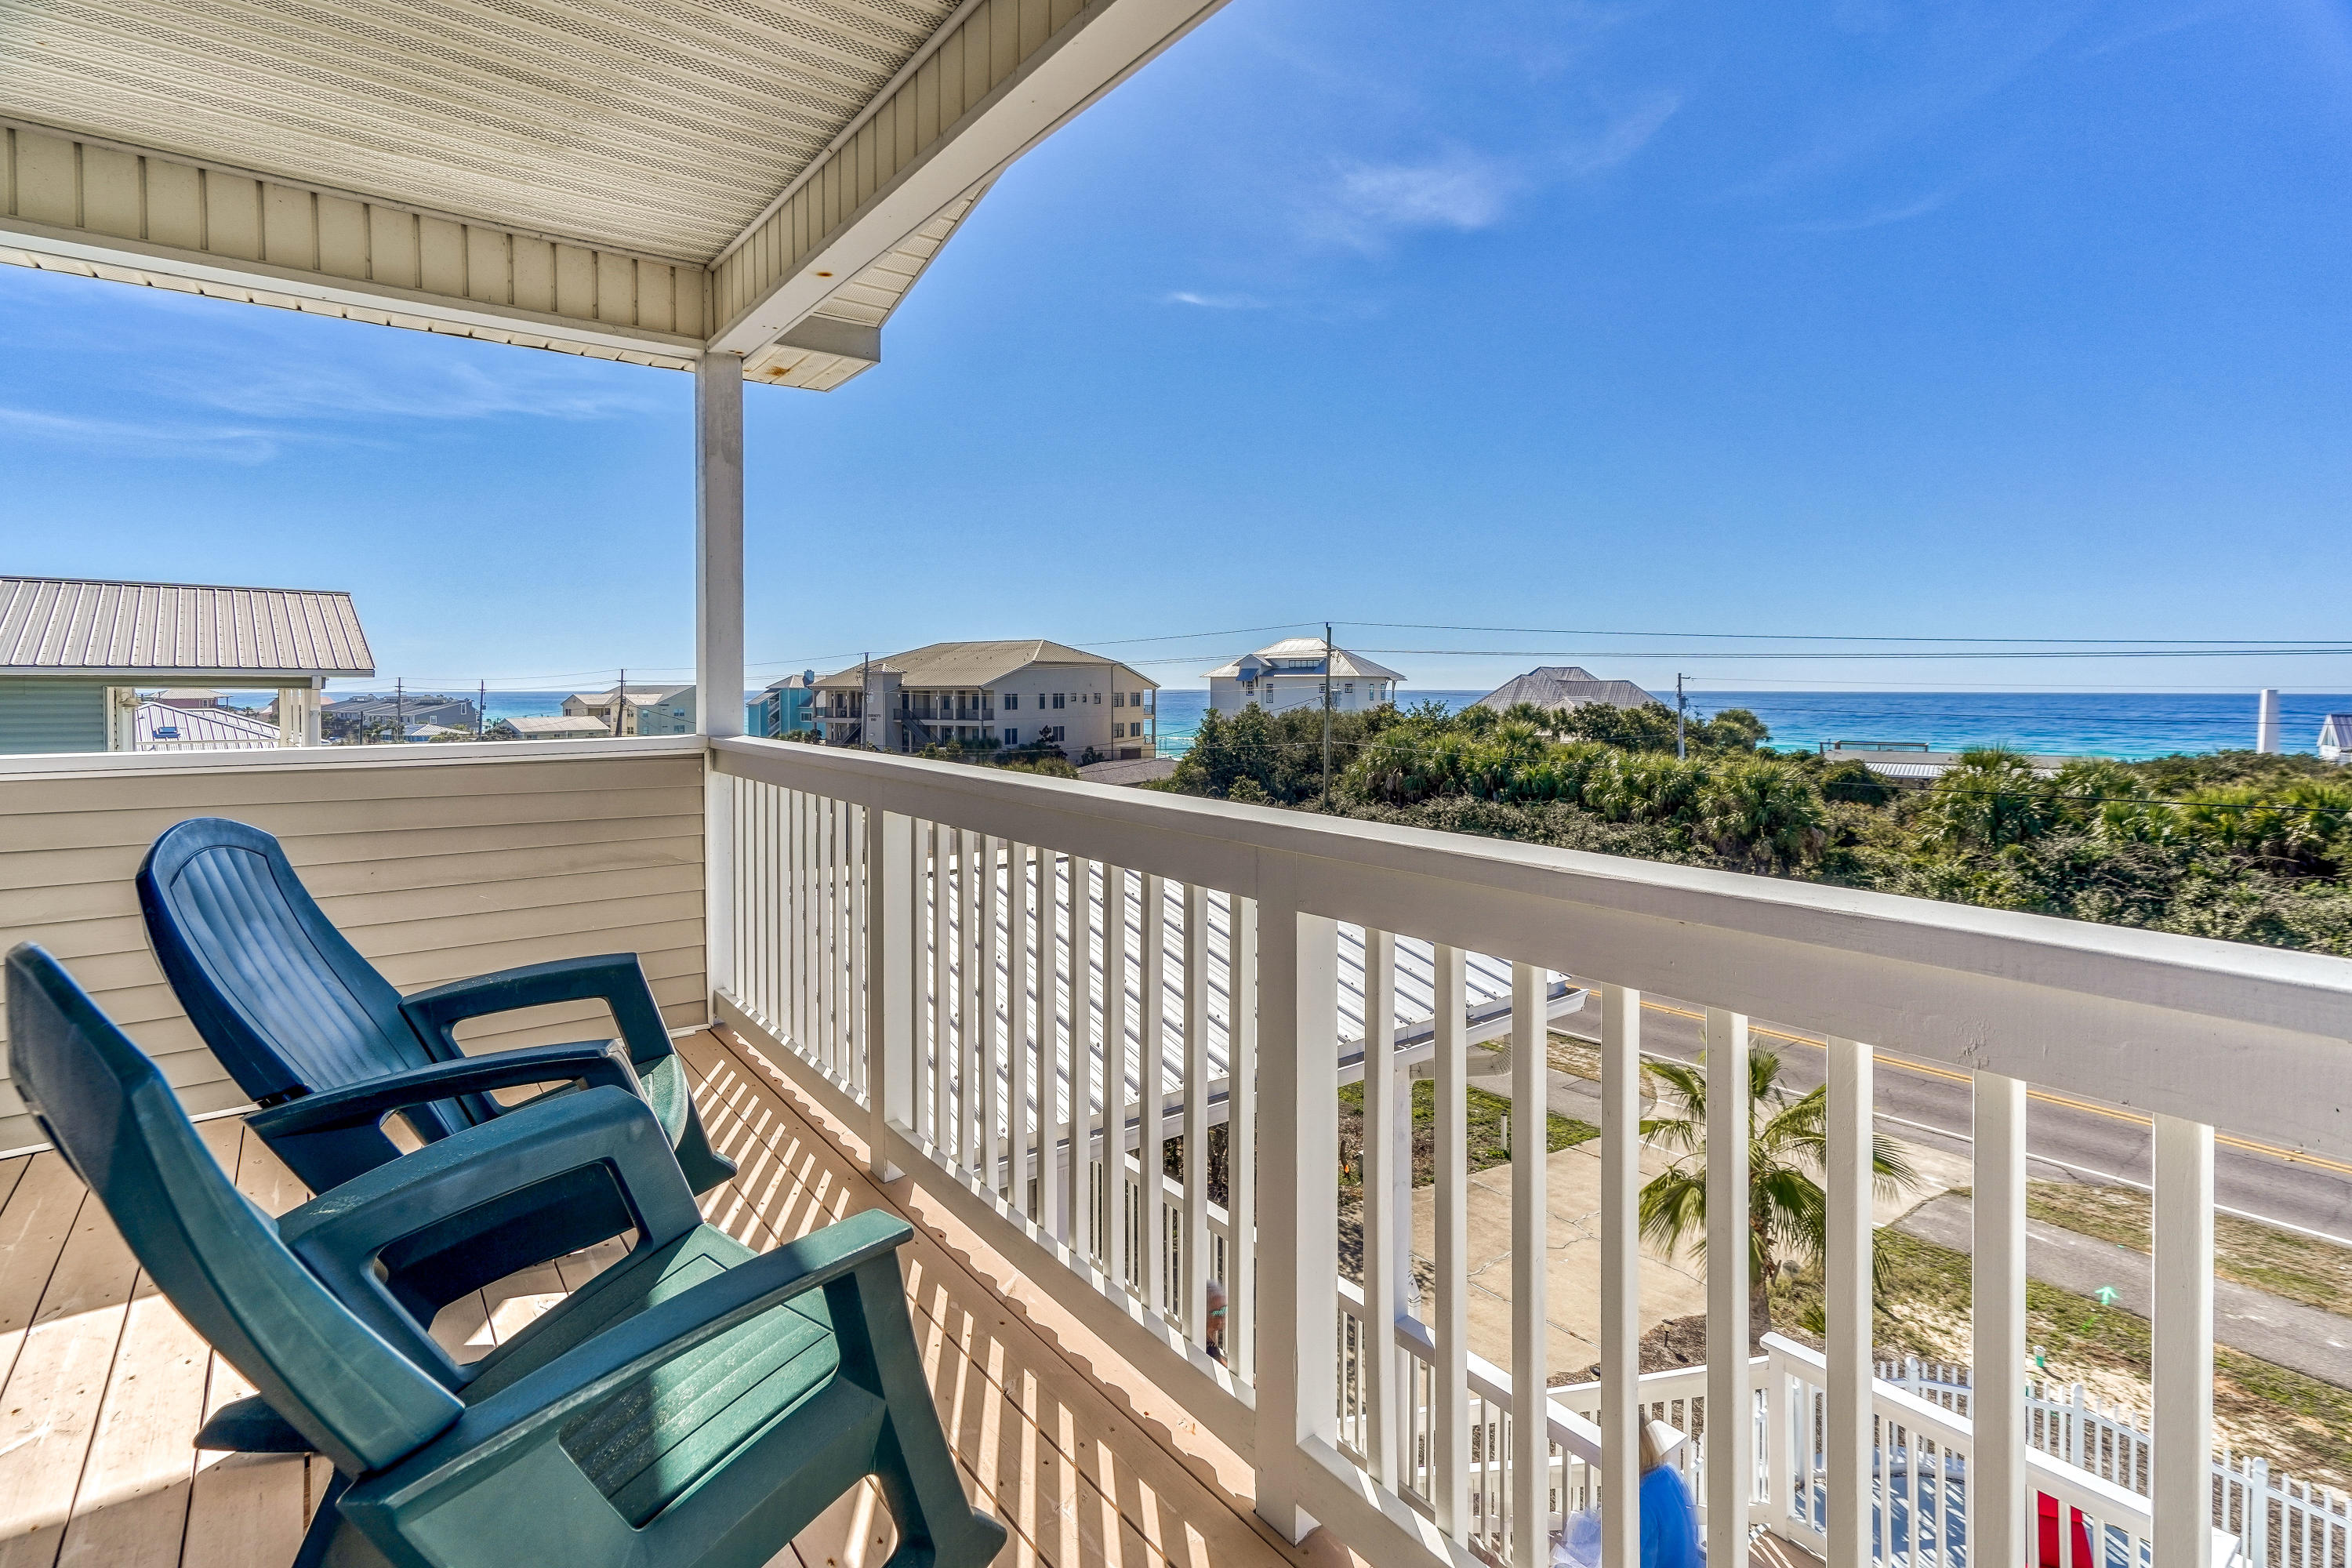 You can own your beach home for under $1M - Location, location - just a short stroll to one of the 3